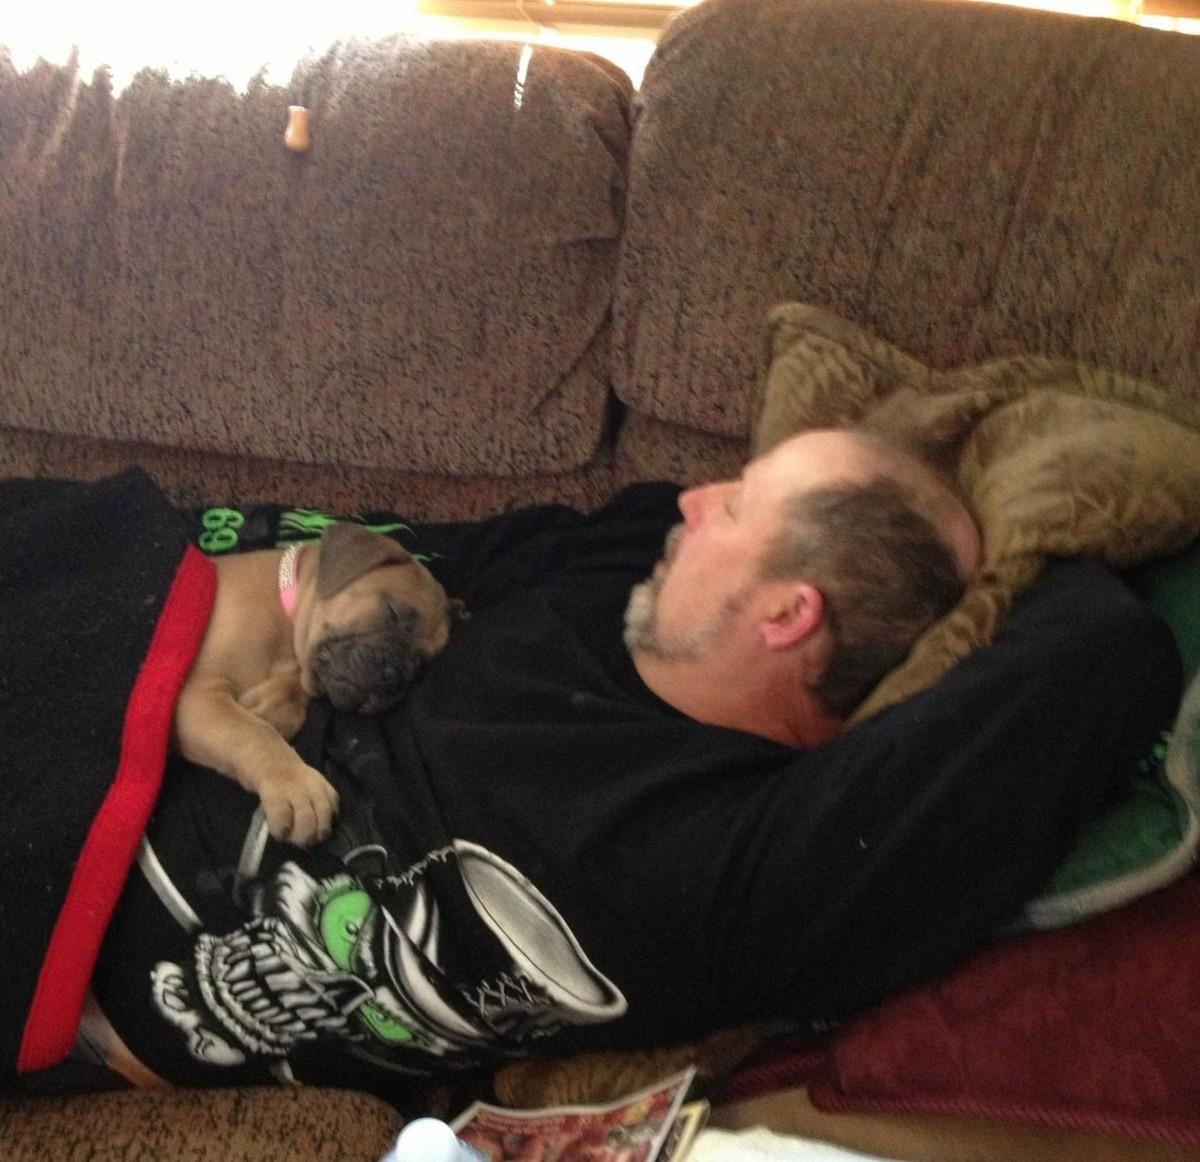 dog and dad napping on couch